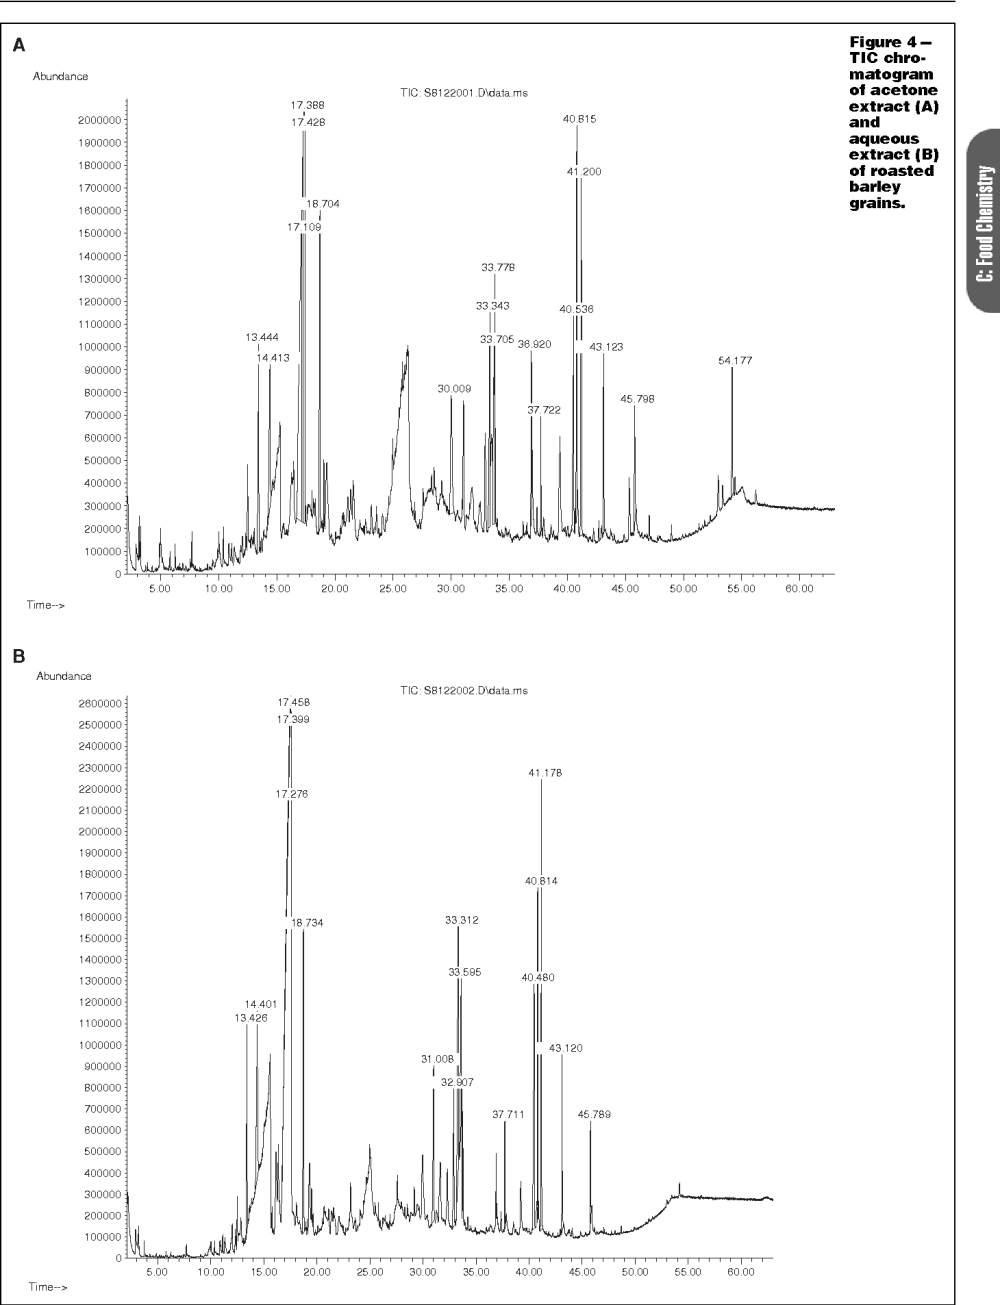 medium resolution of figure 4 tic chromatogram of acetone extract a and aqueous extract